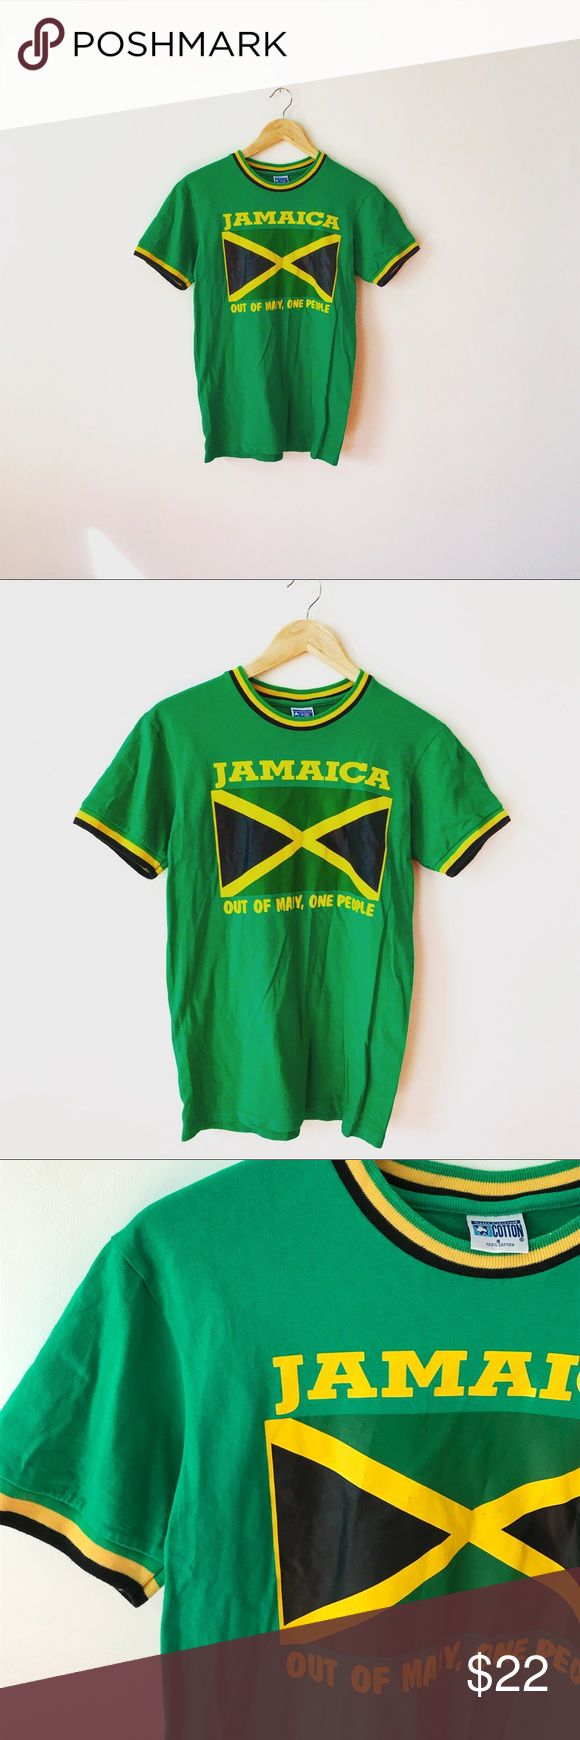 {vintage} • bright green JAMAICA flag theme shirt + + beige green JAMAICA theme jersey type shirt   •• size: small •• condition: excellent — no stains, holes, discoloration or cracking  •• colors are very bright, needs to be washed to be broken in a bit  — #jersey #flag #jamaica #green #represent #jamaican #football #soccer #pride Vintage Shirts Tees - Short Sleeve